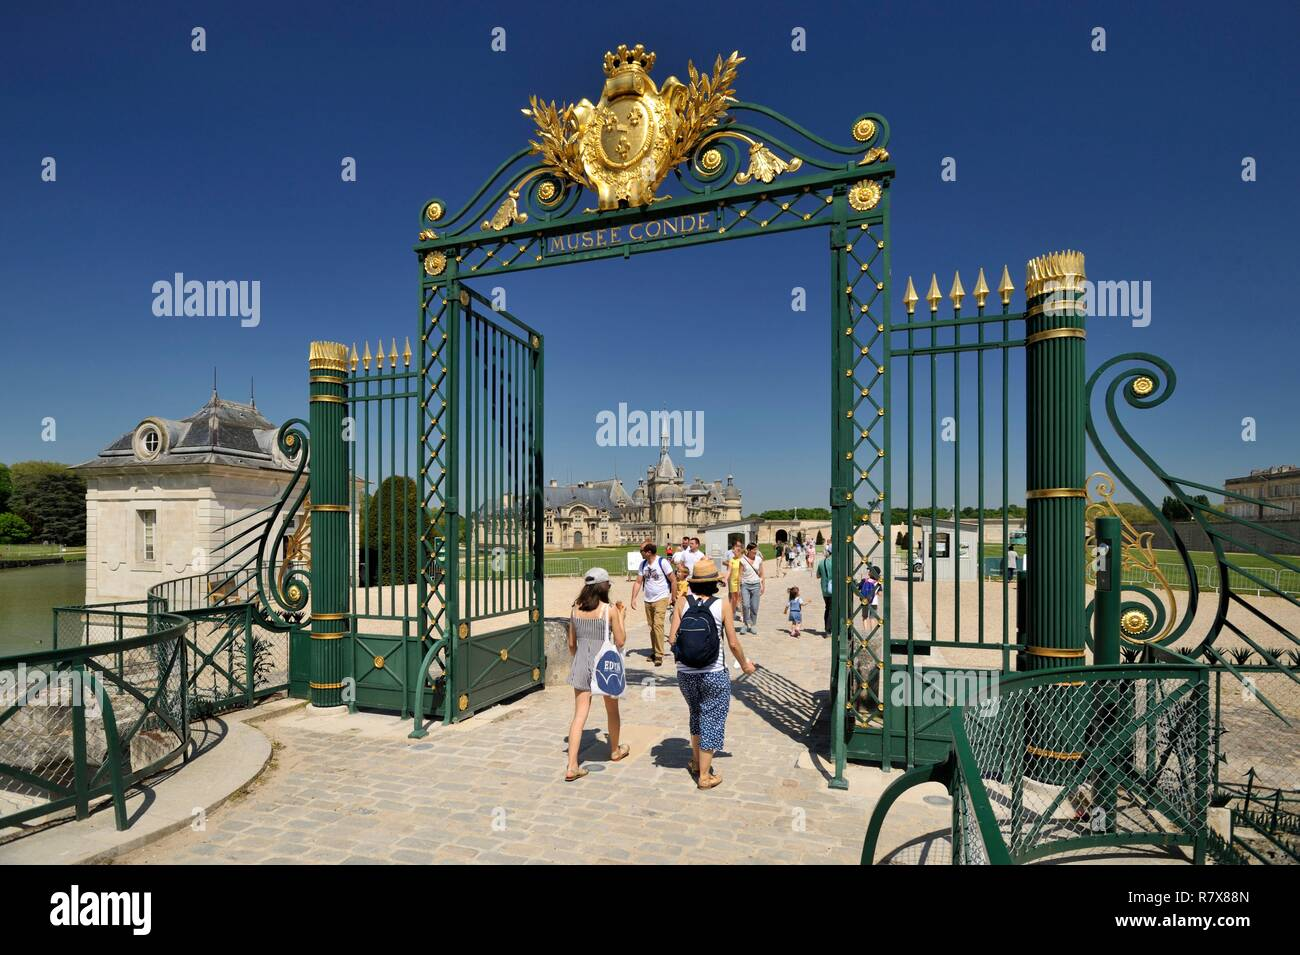 France, Oise, Chantilly, Chantilly estate, entrance of the castle and the Conde Museum - Stock Image